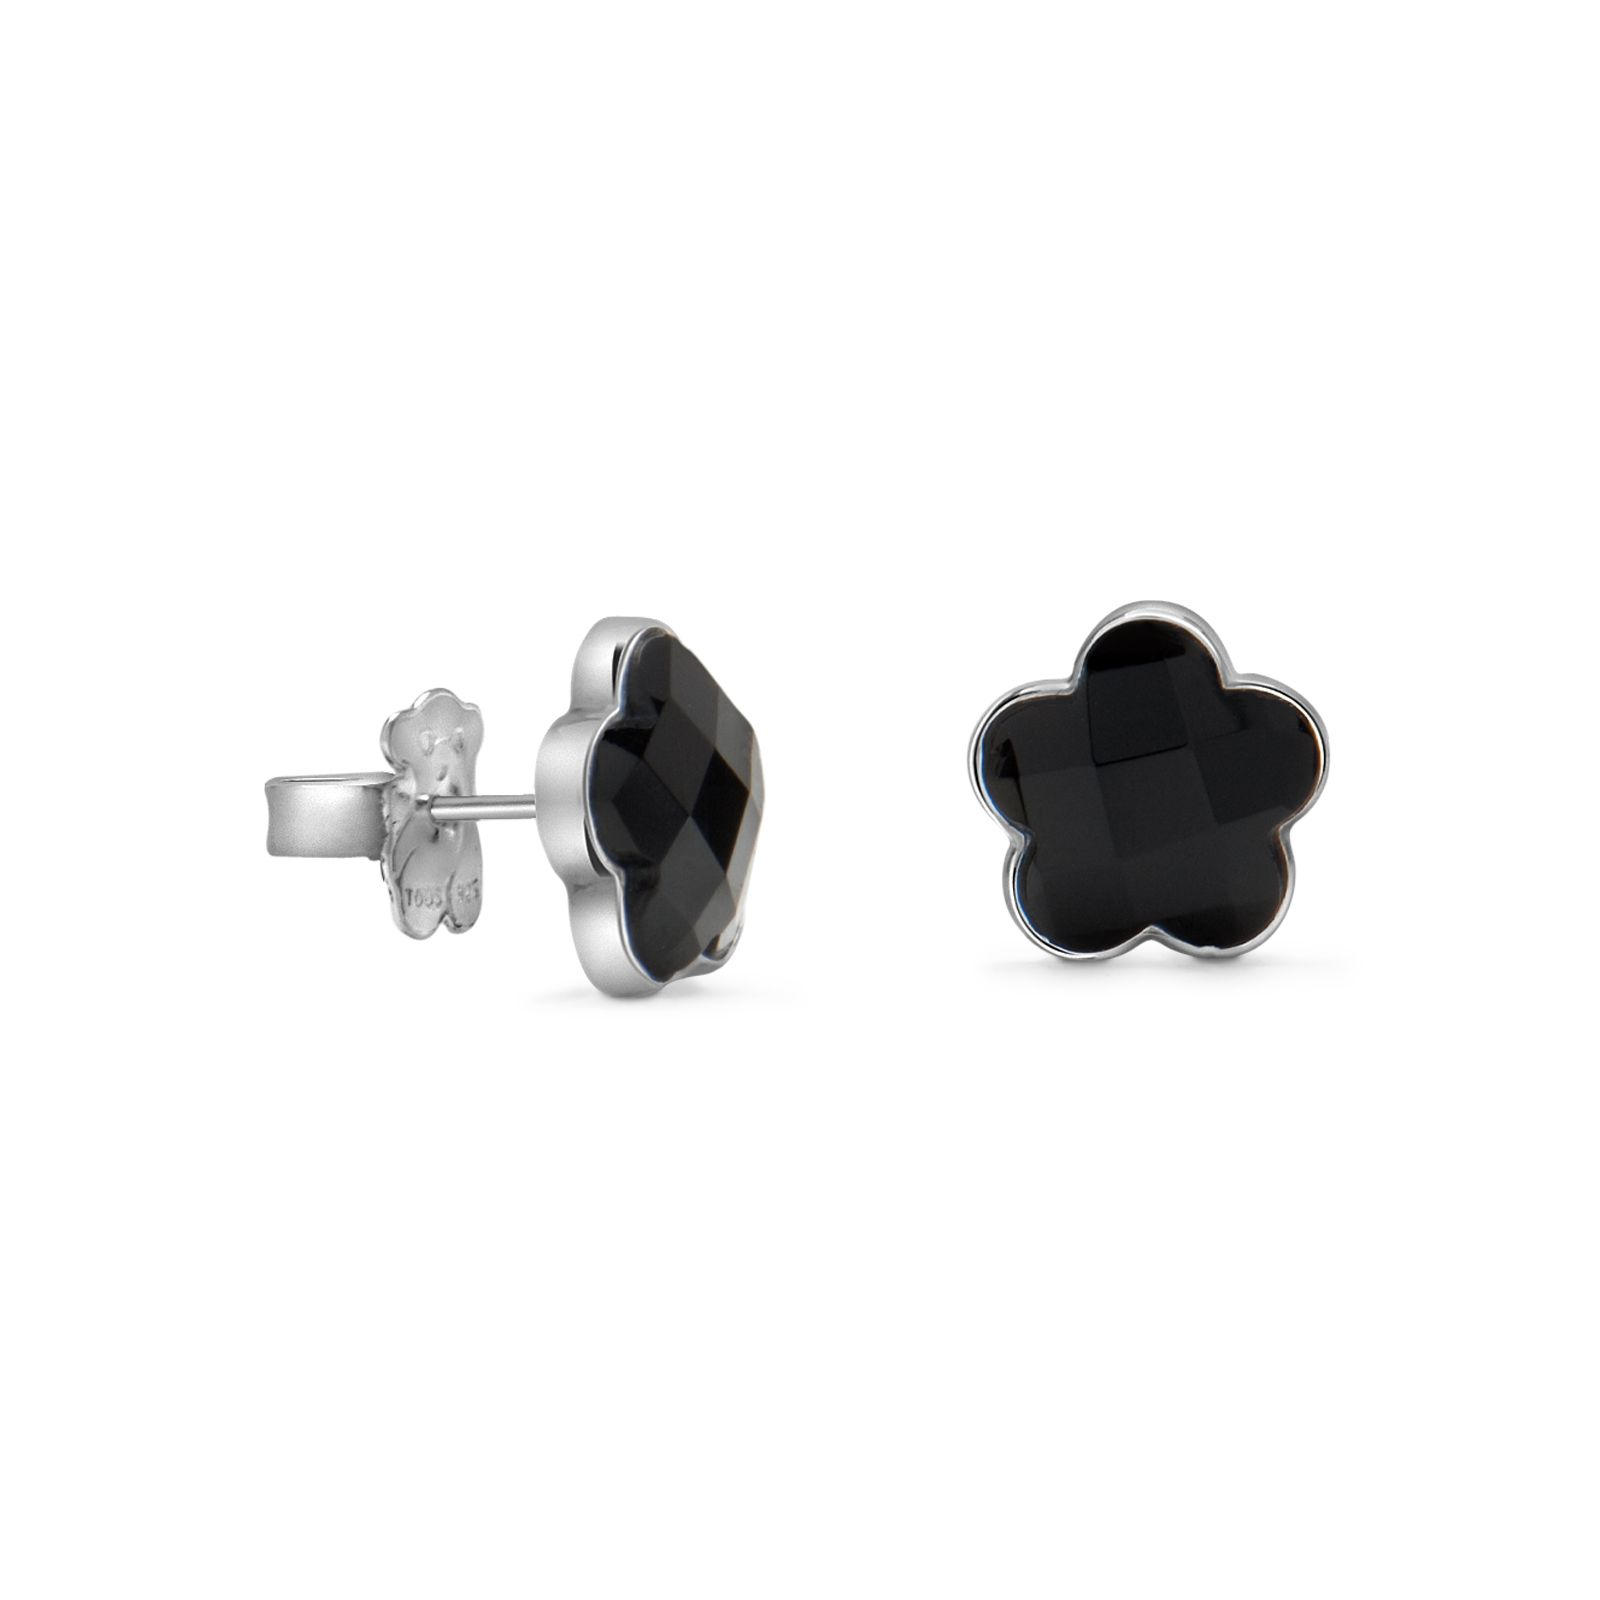 Sterling silver TOUS Color earrings with faceted onyx.TOUS Washington DC